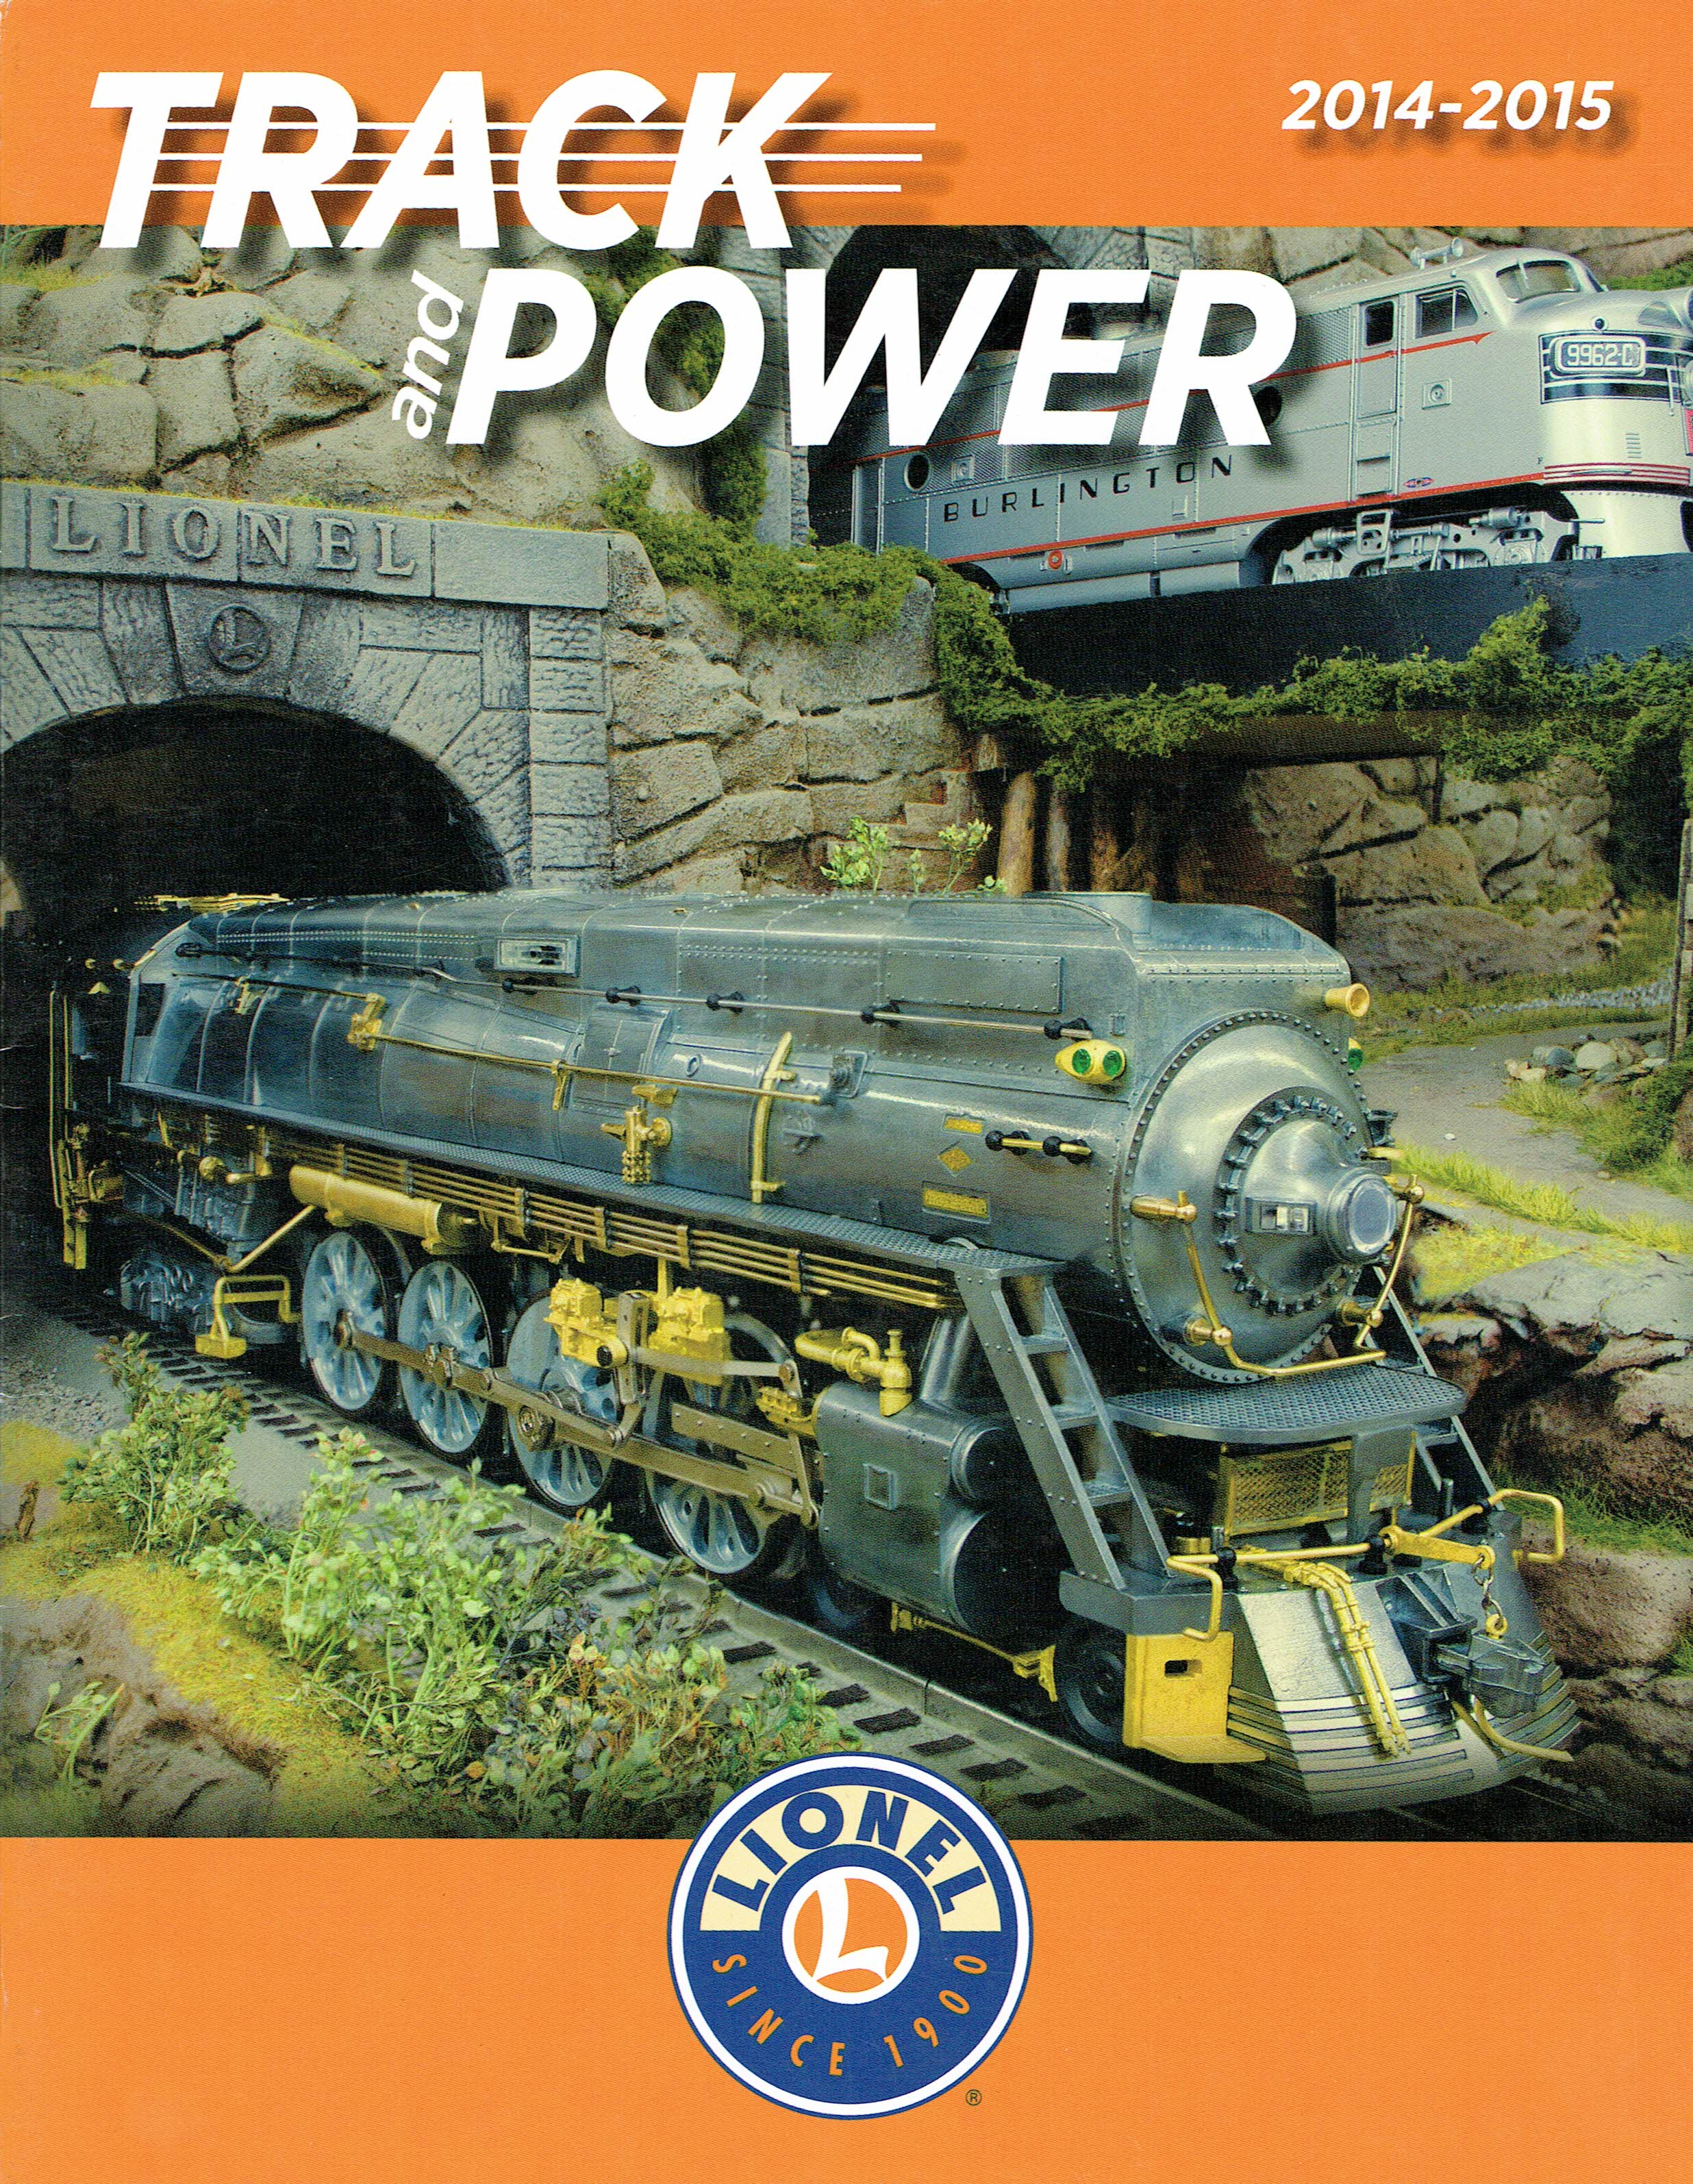 Lionel 2014-2015 Track and Power Catalog image